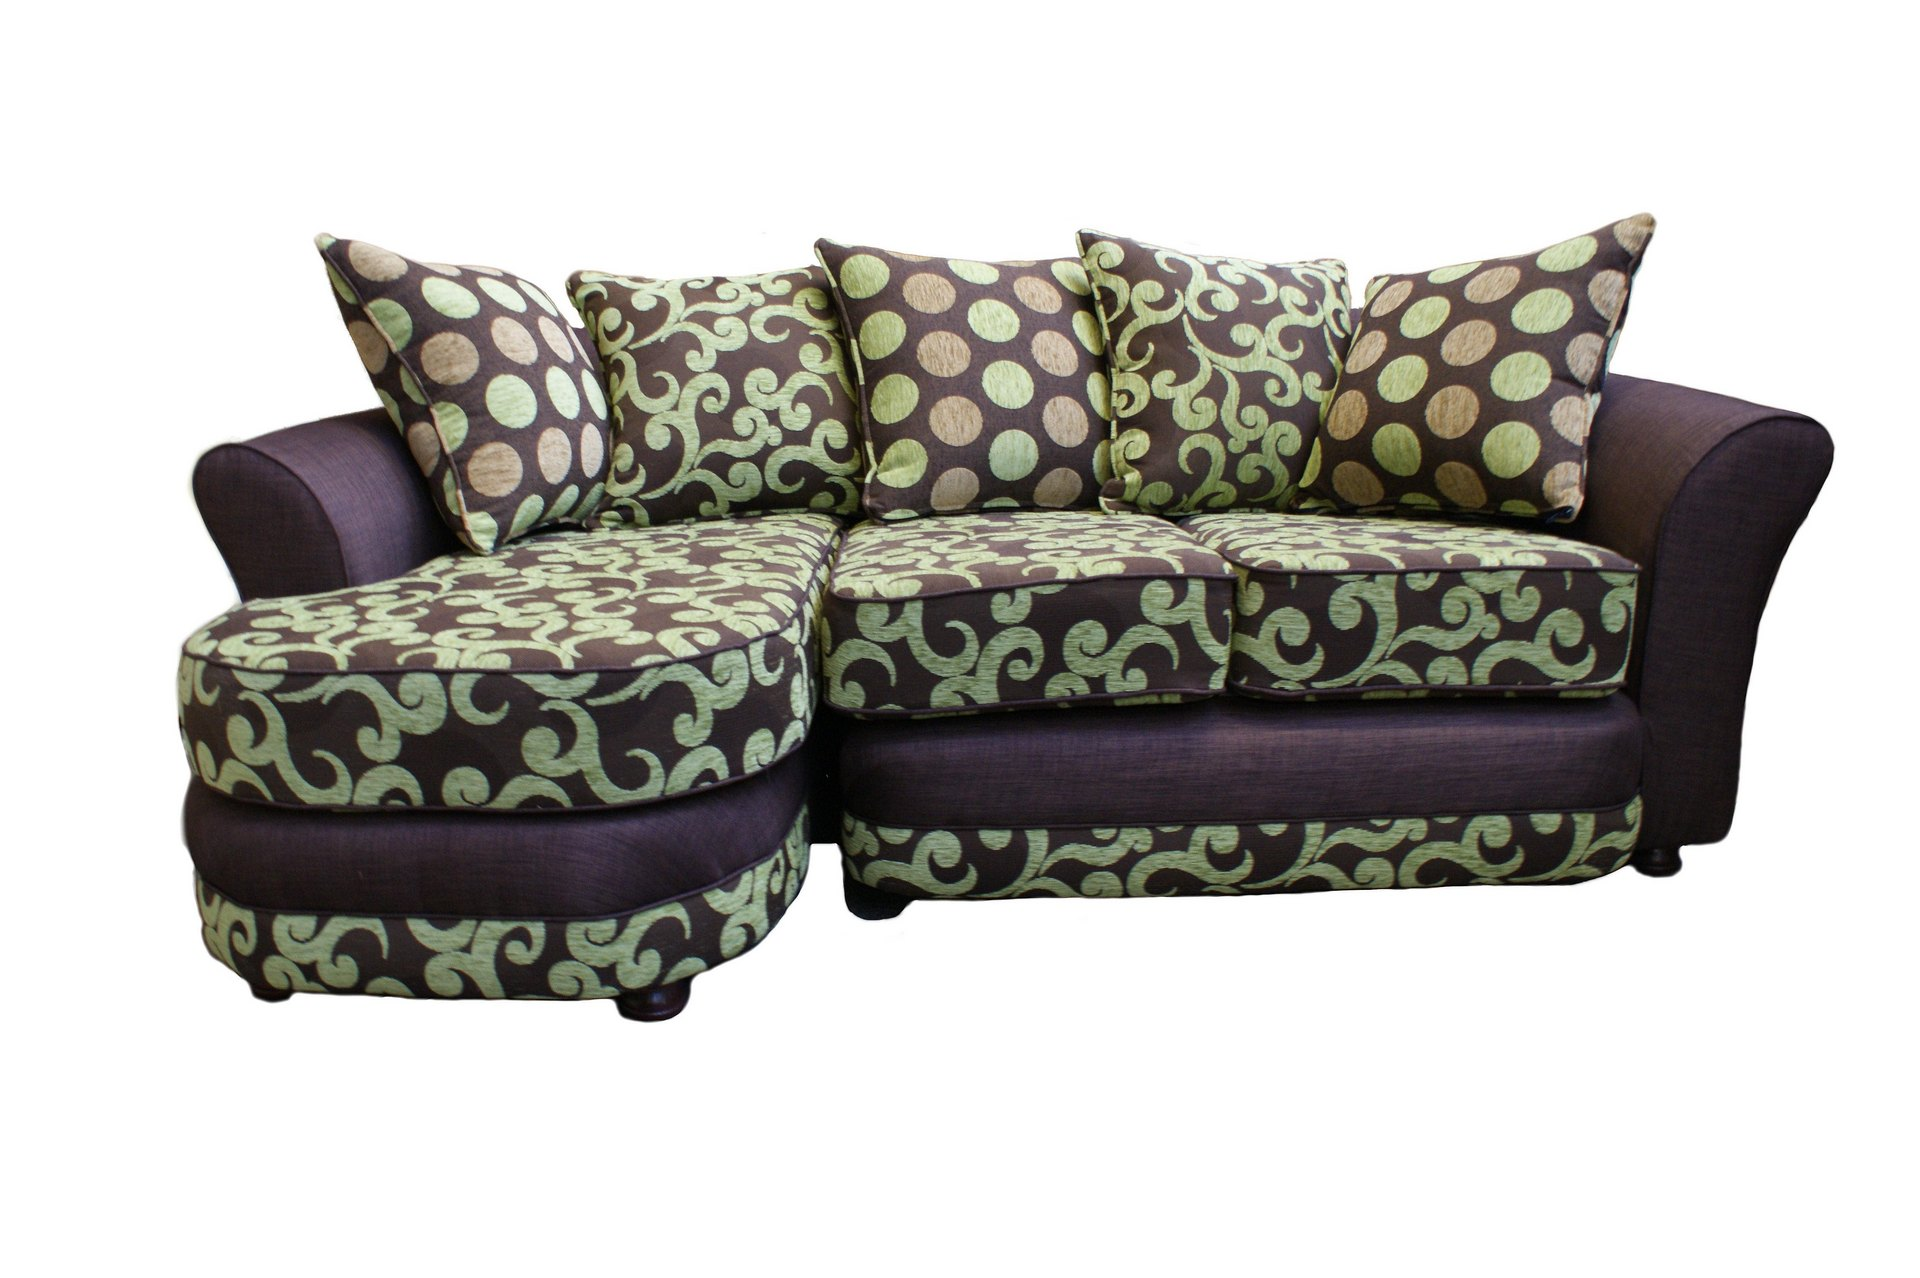 Online sofa sale designersofas4u blog for Couches and sofas for sale